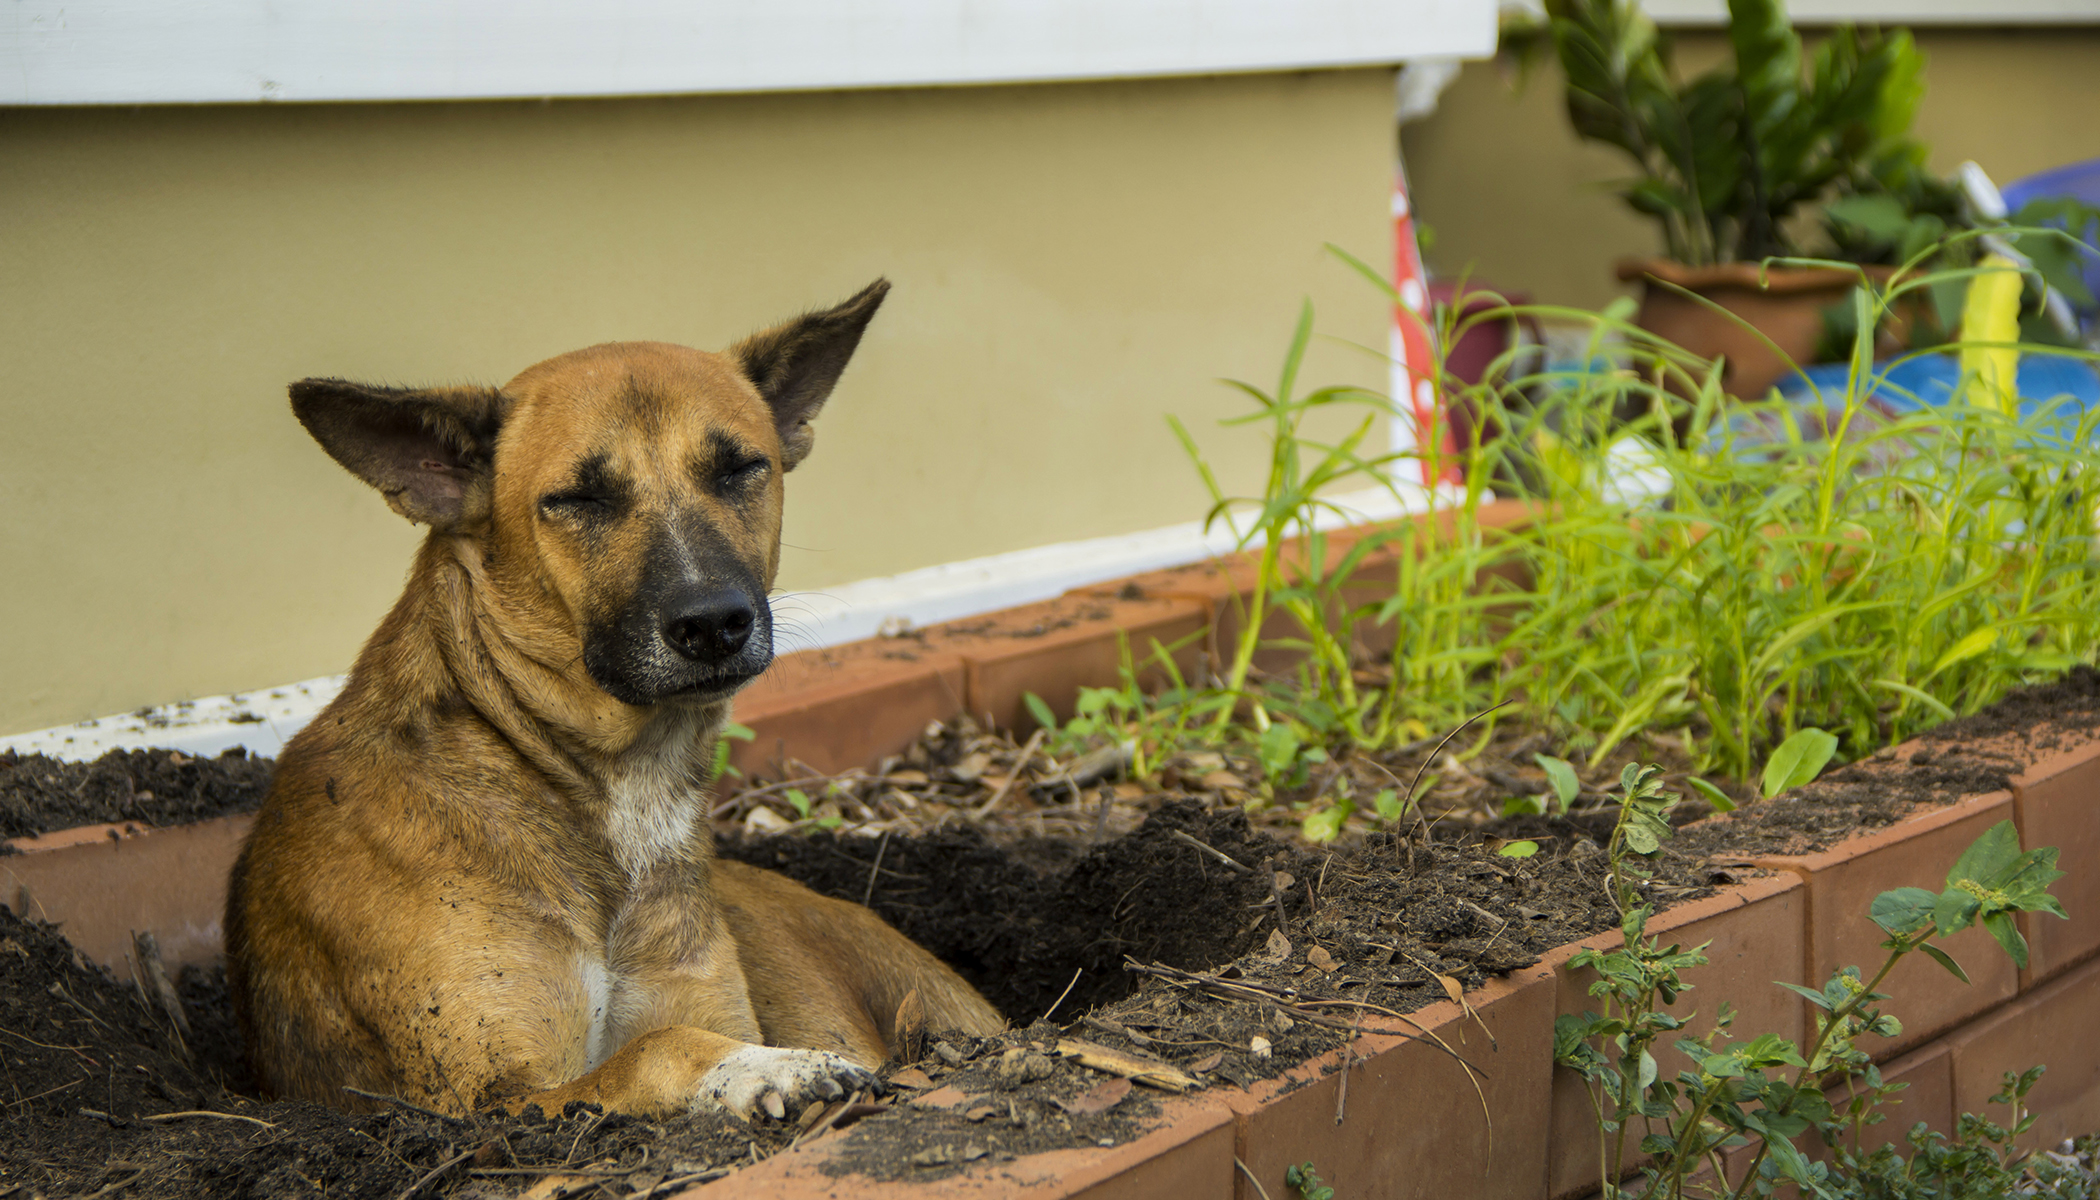 Homeless Dog Dug a Hole in a Grave, Appears to Be Protecting a 'Secret'—Take a Closer Look